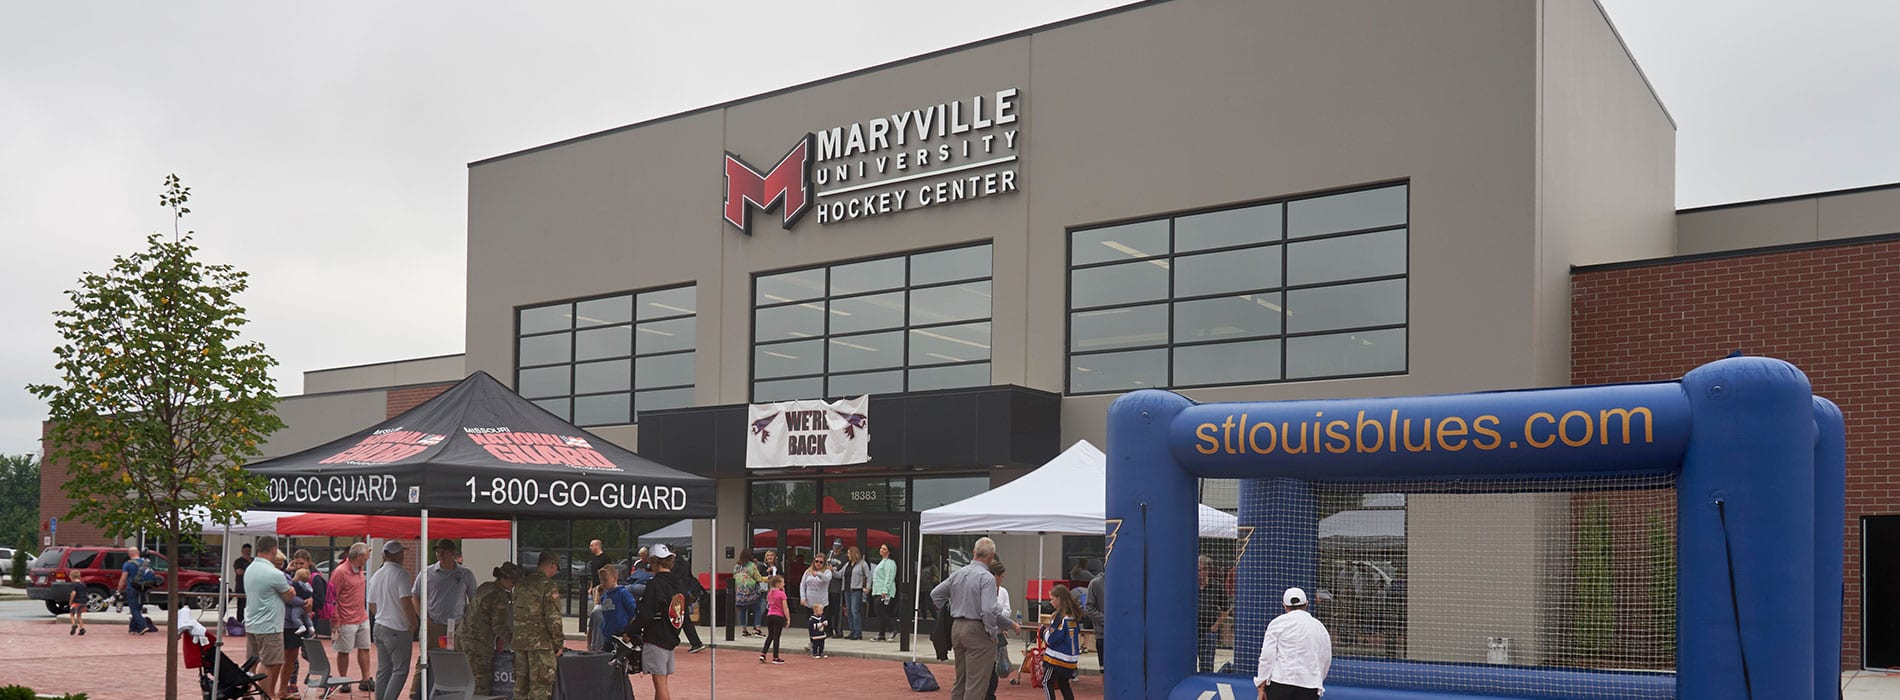 entrance to maryville ice hockey center